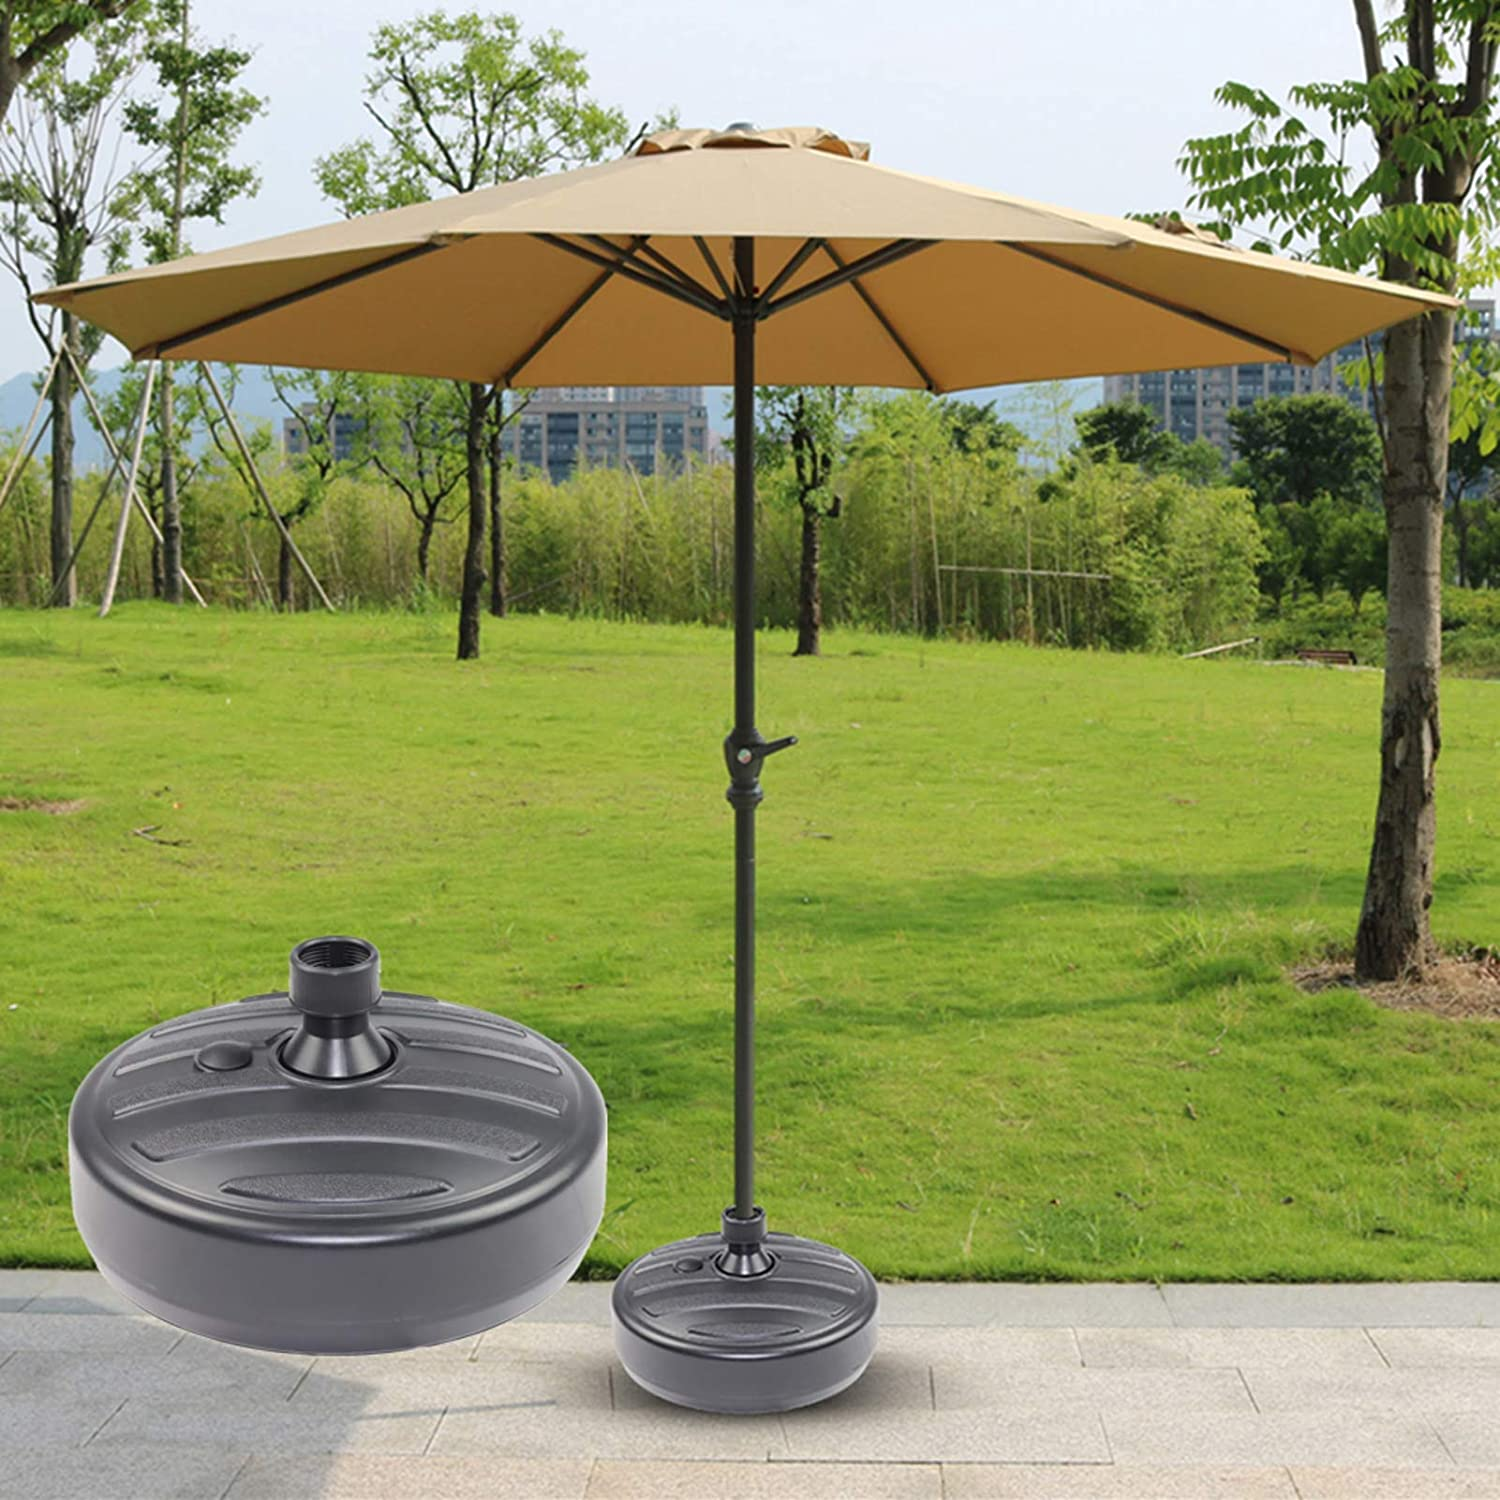 40lb Round Ranking Max 65% OFF TOP15 Plastic Patio Fillable Stand Water Umbrella San Base